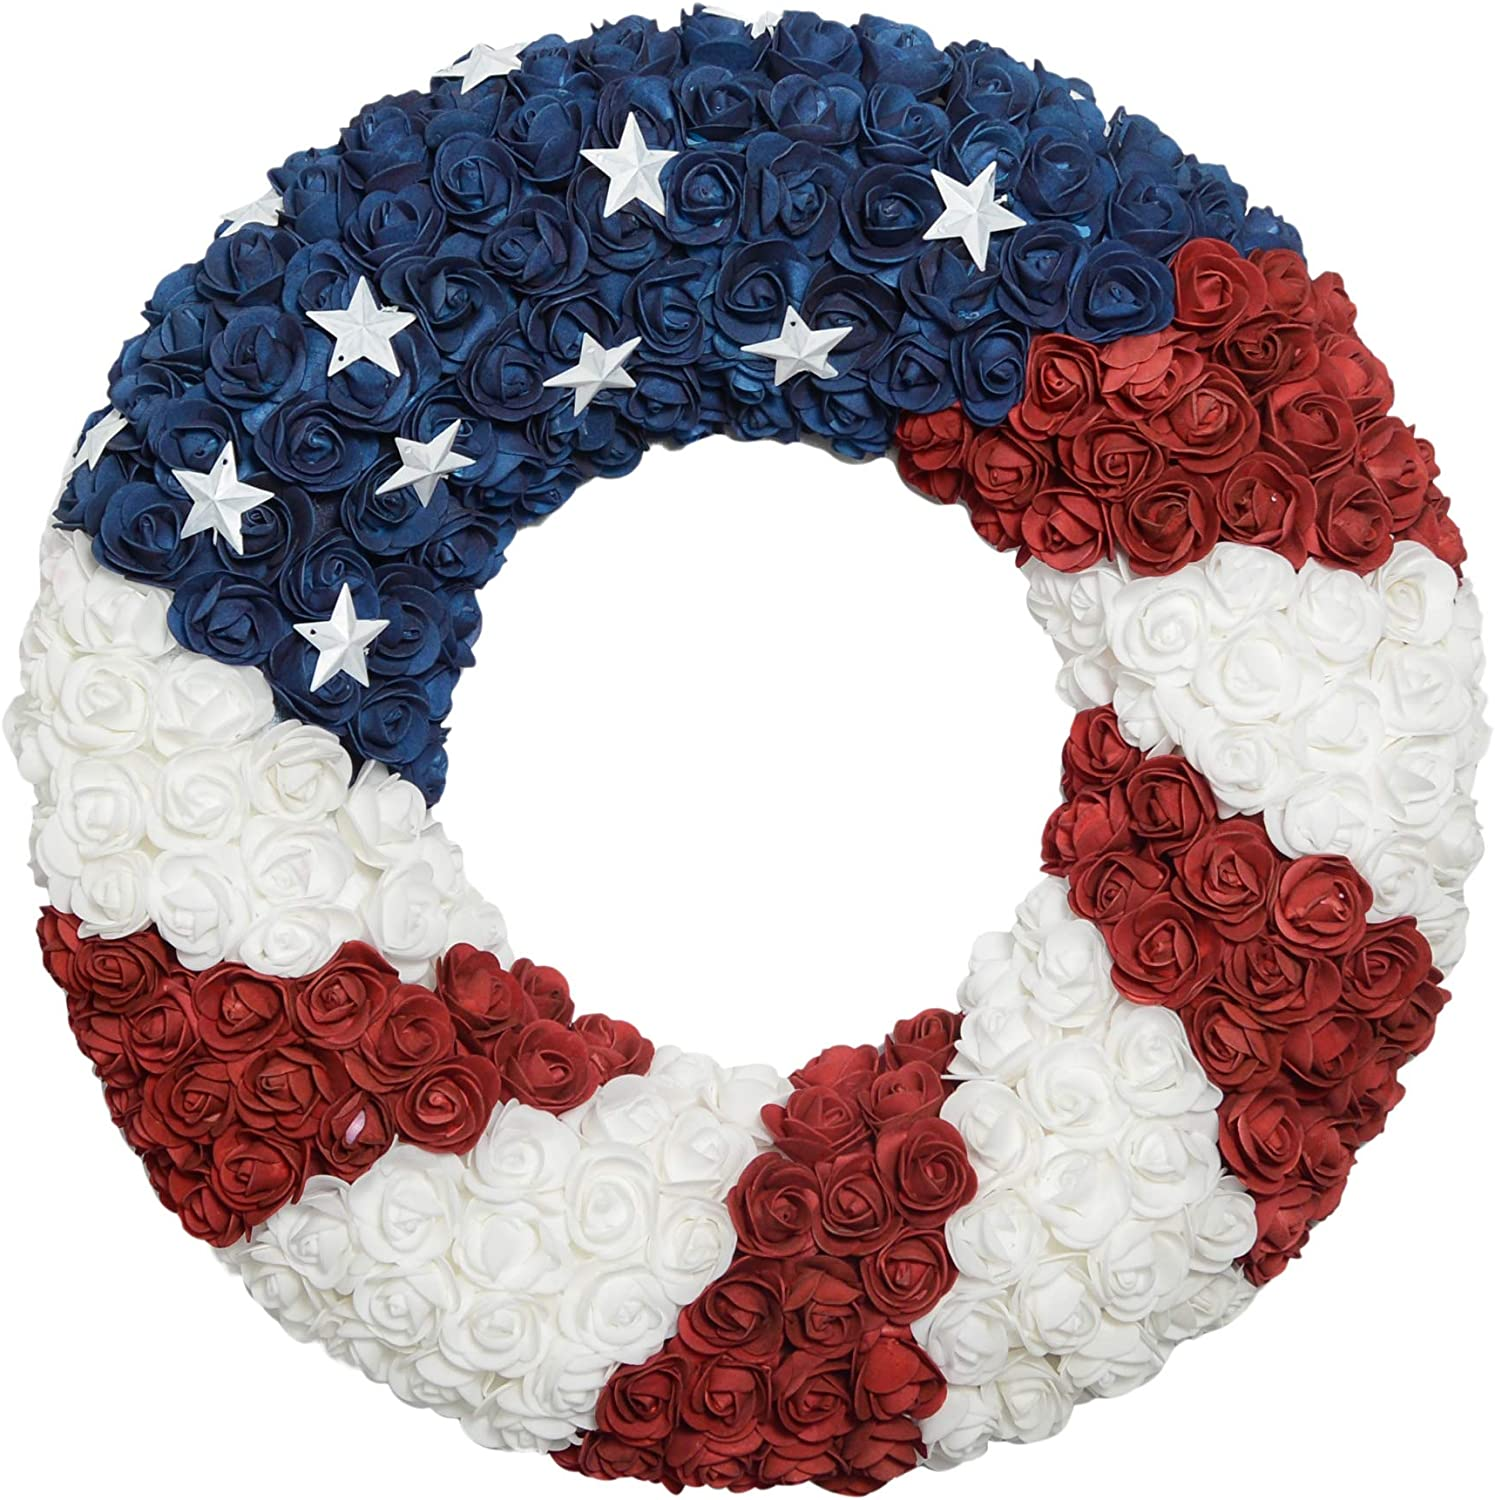 Amazon Com Ranspac Silk Rose Americana Wreath Patriotic Wreath 21 Inch Diameter Roses And Stars Red White And Blue 4th Of July Decorating Home Kitchen